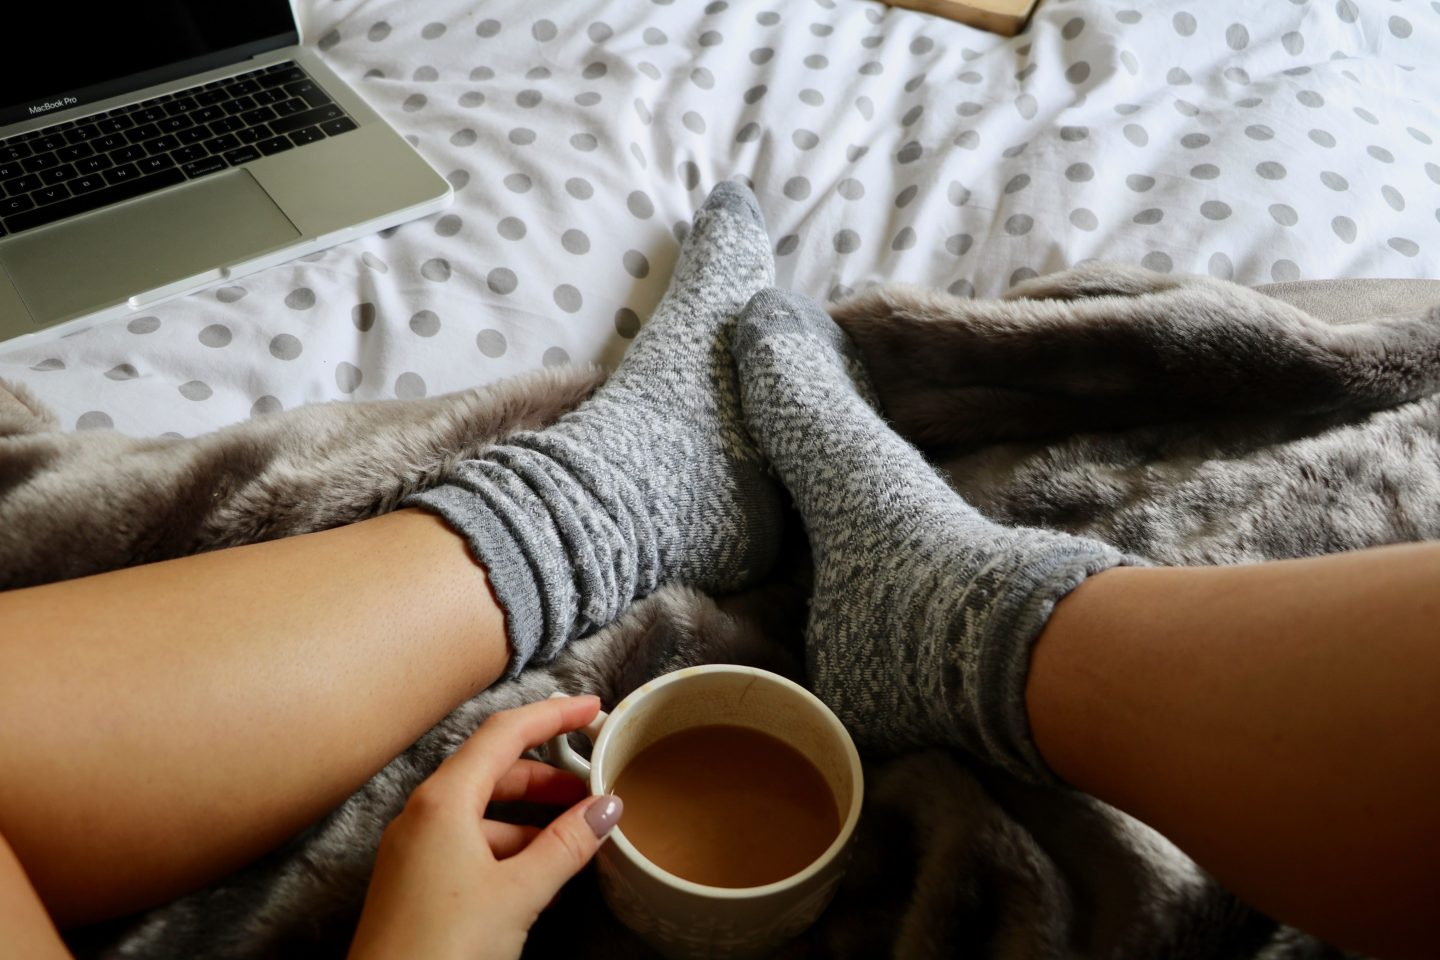 Back to Uni: Snuggly Nights In